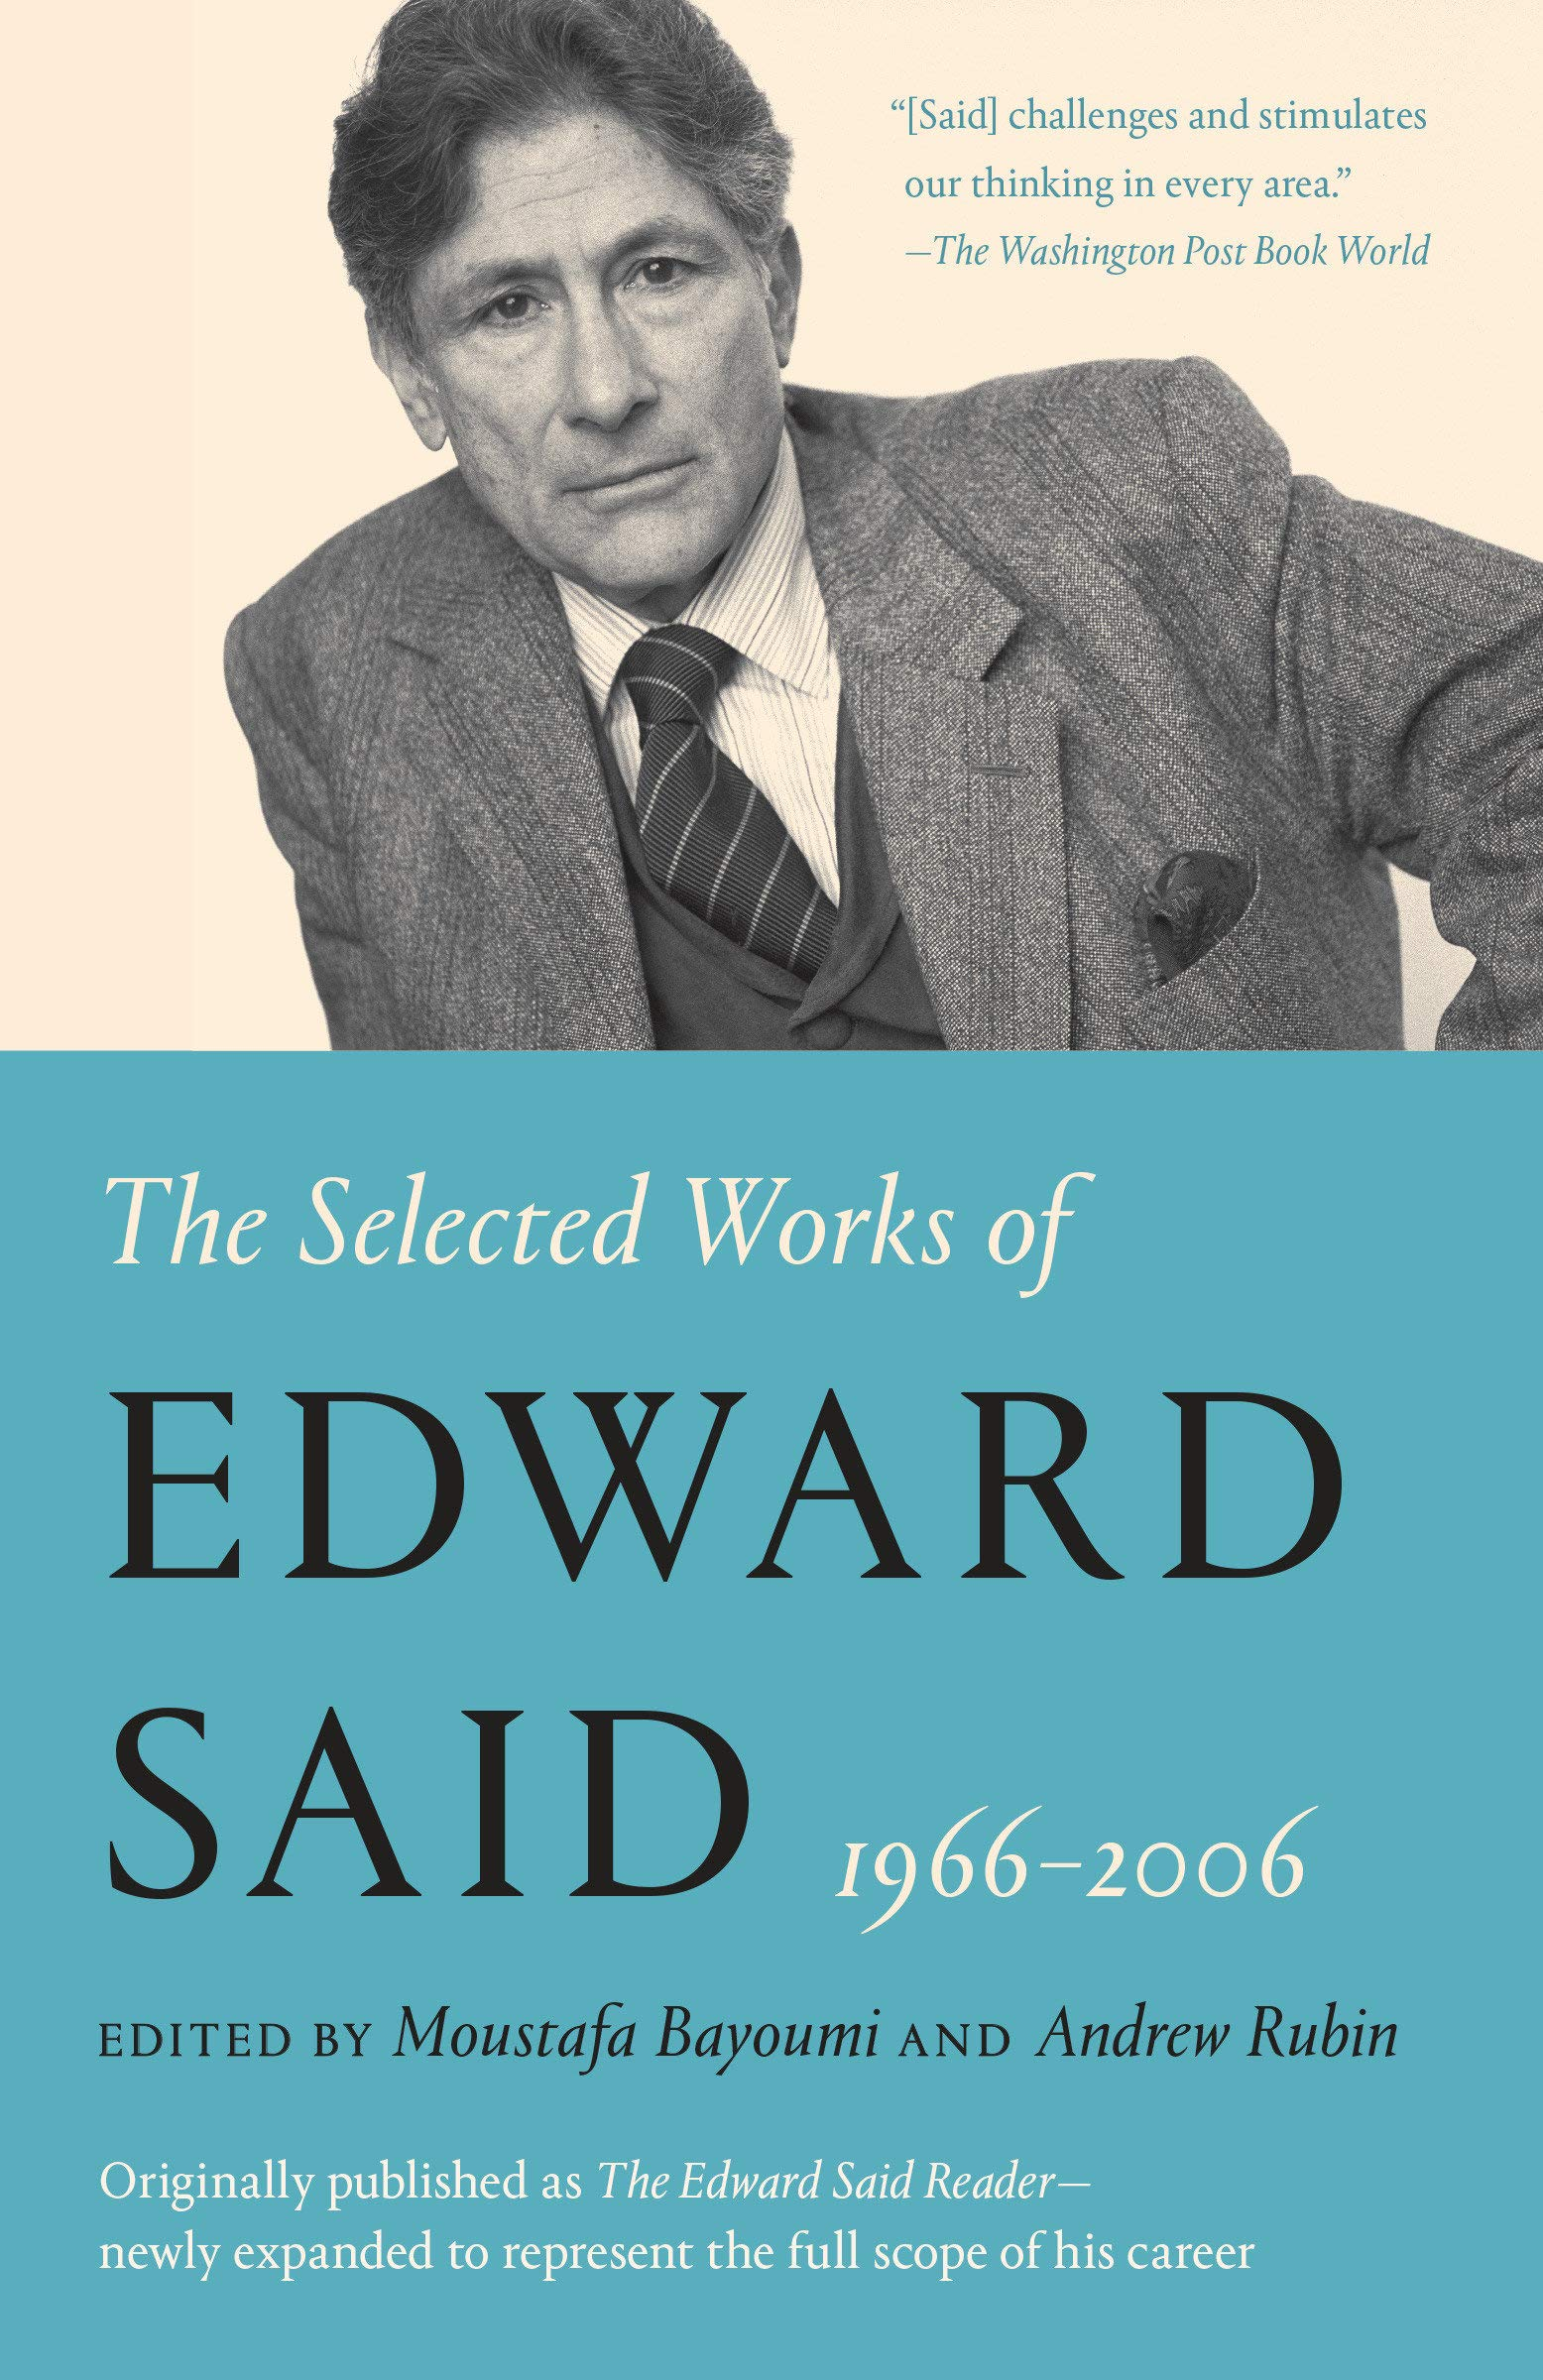 cover of Moustafa Bayoumi and Andrew Rubin, eds.	The Selected Works of Edward Said, 1966-2006. Vintage, 2019.	PN51 .S247 2019